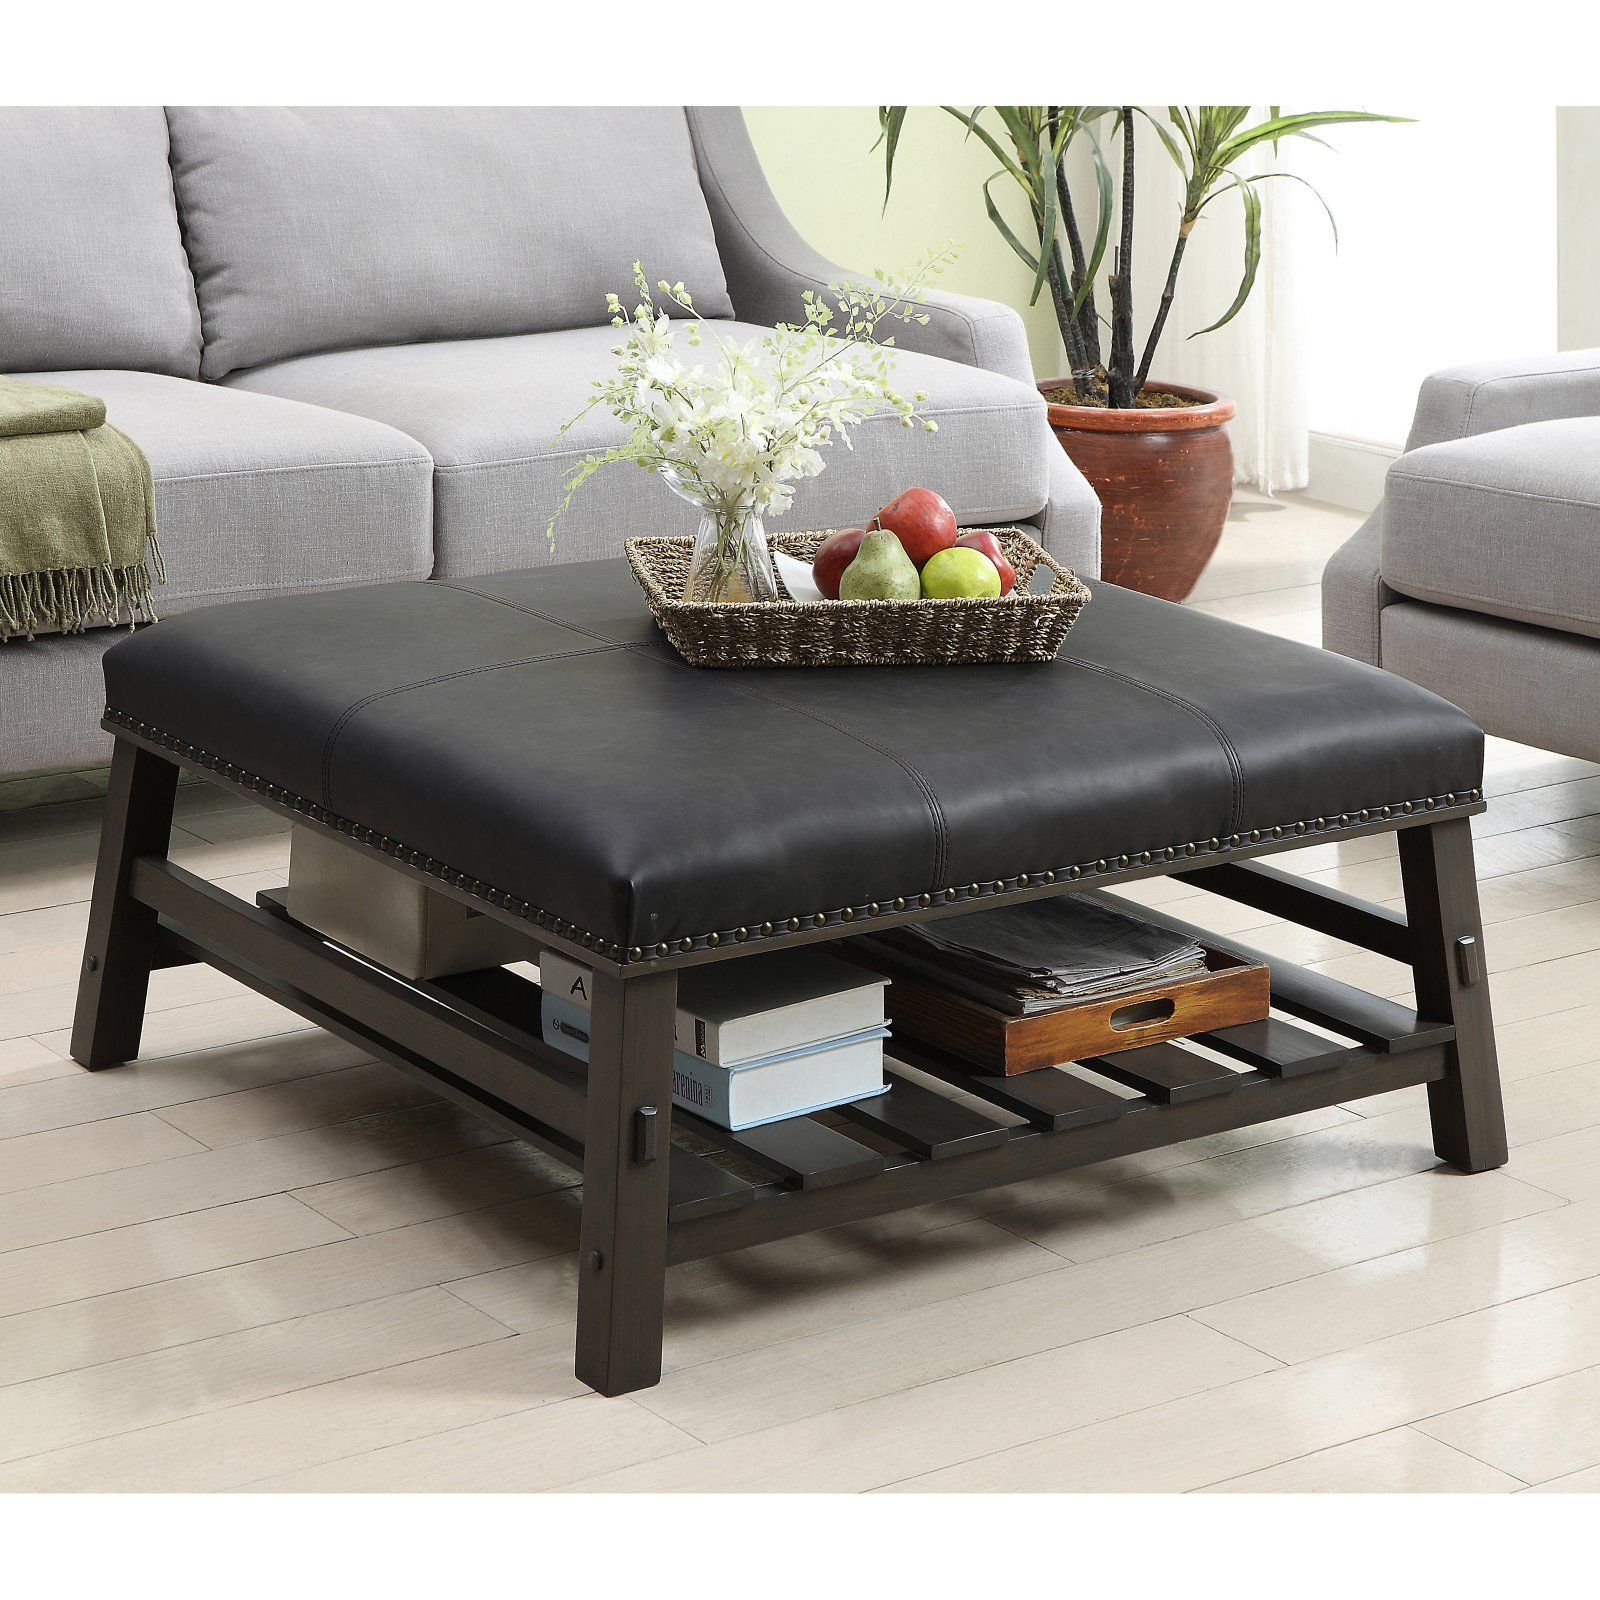 Astounding Coast To Coast Cobblestone Faux Leather Cocktail Ottoman In Cjindustries Chair Design For Home Cjindustriesco